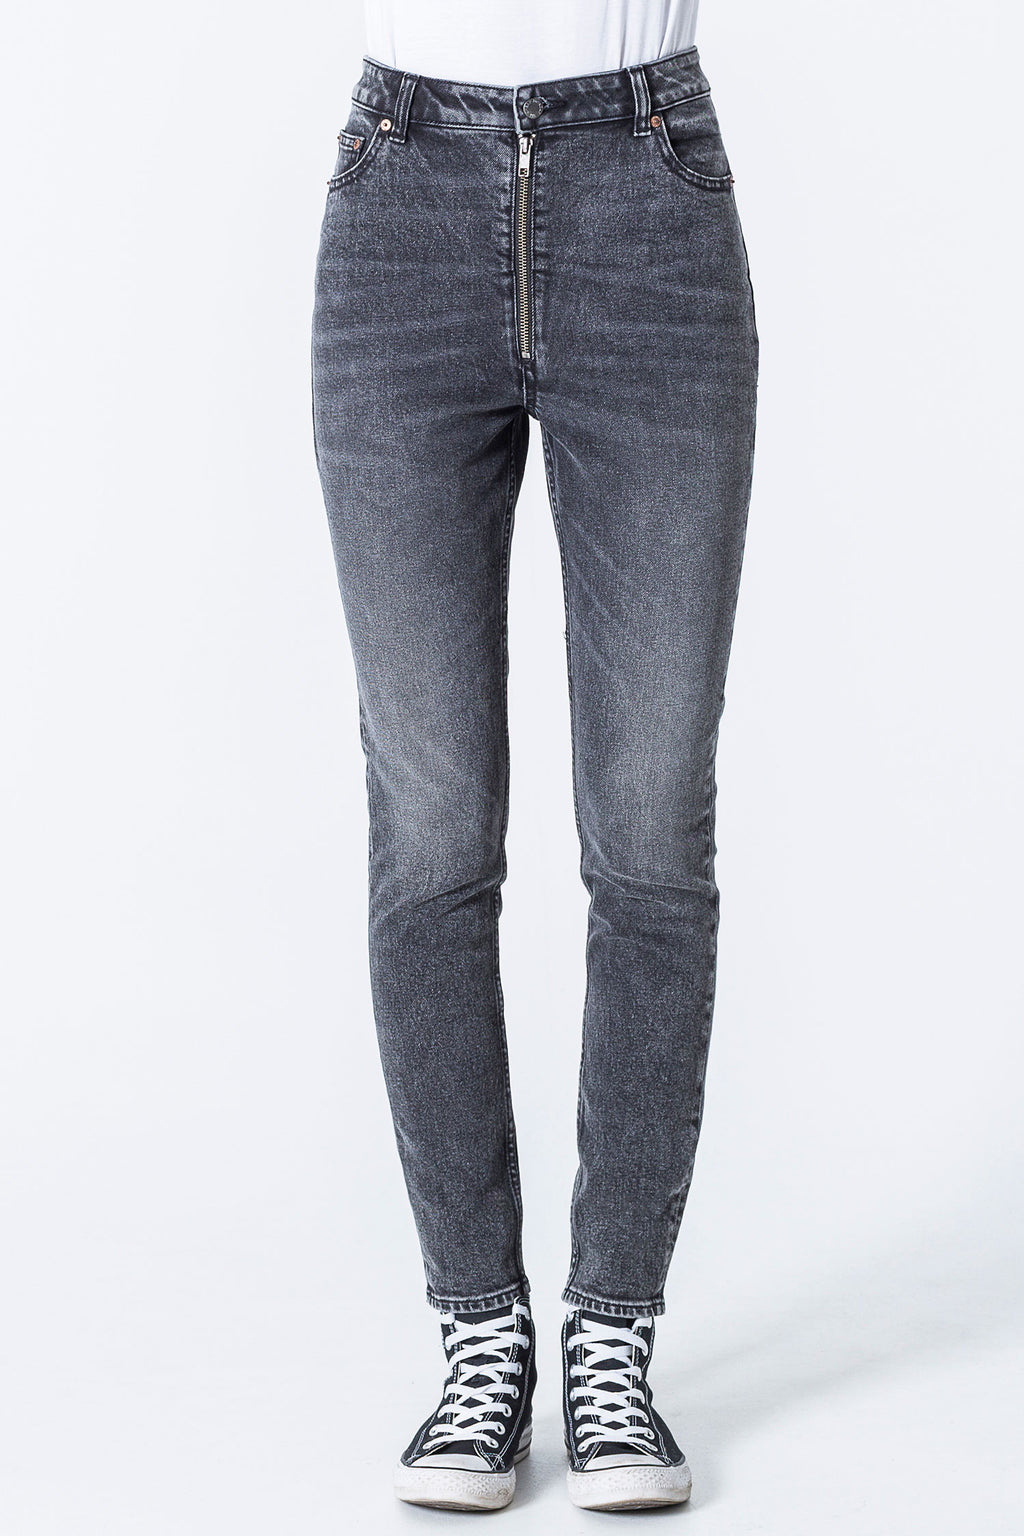 Cheap Monday - Donna Jeans - Dust Black - Gals